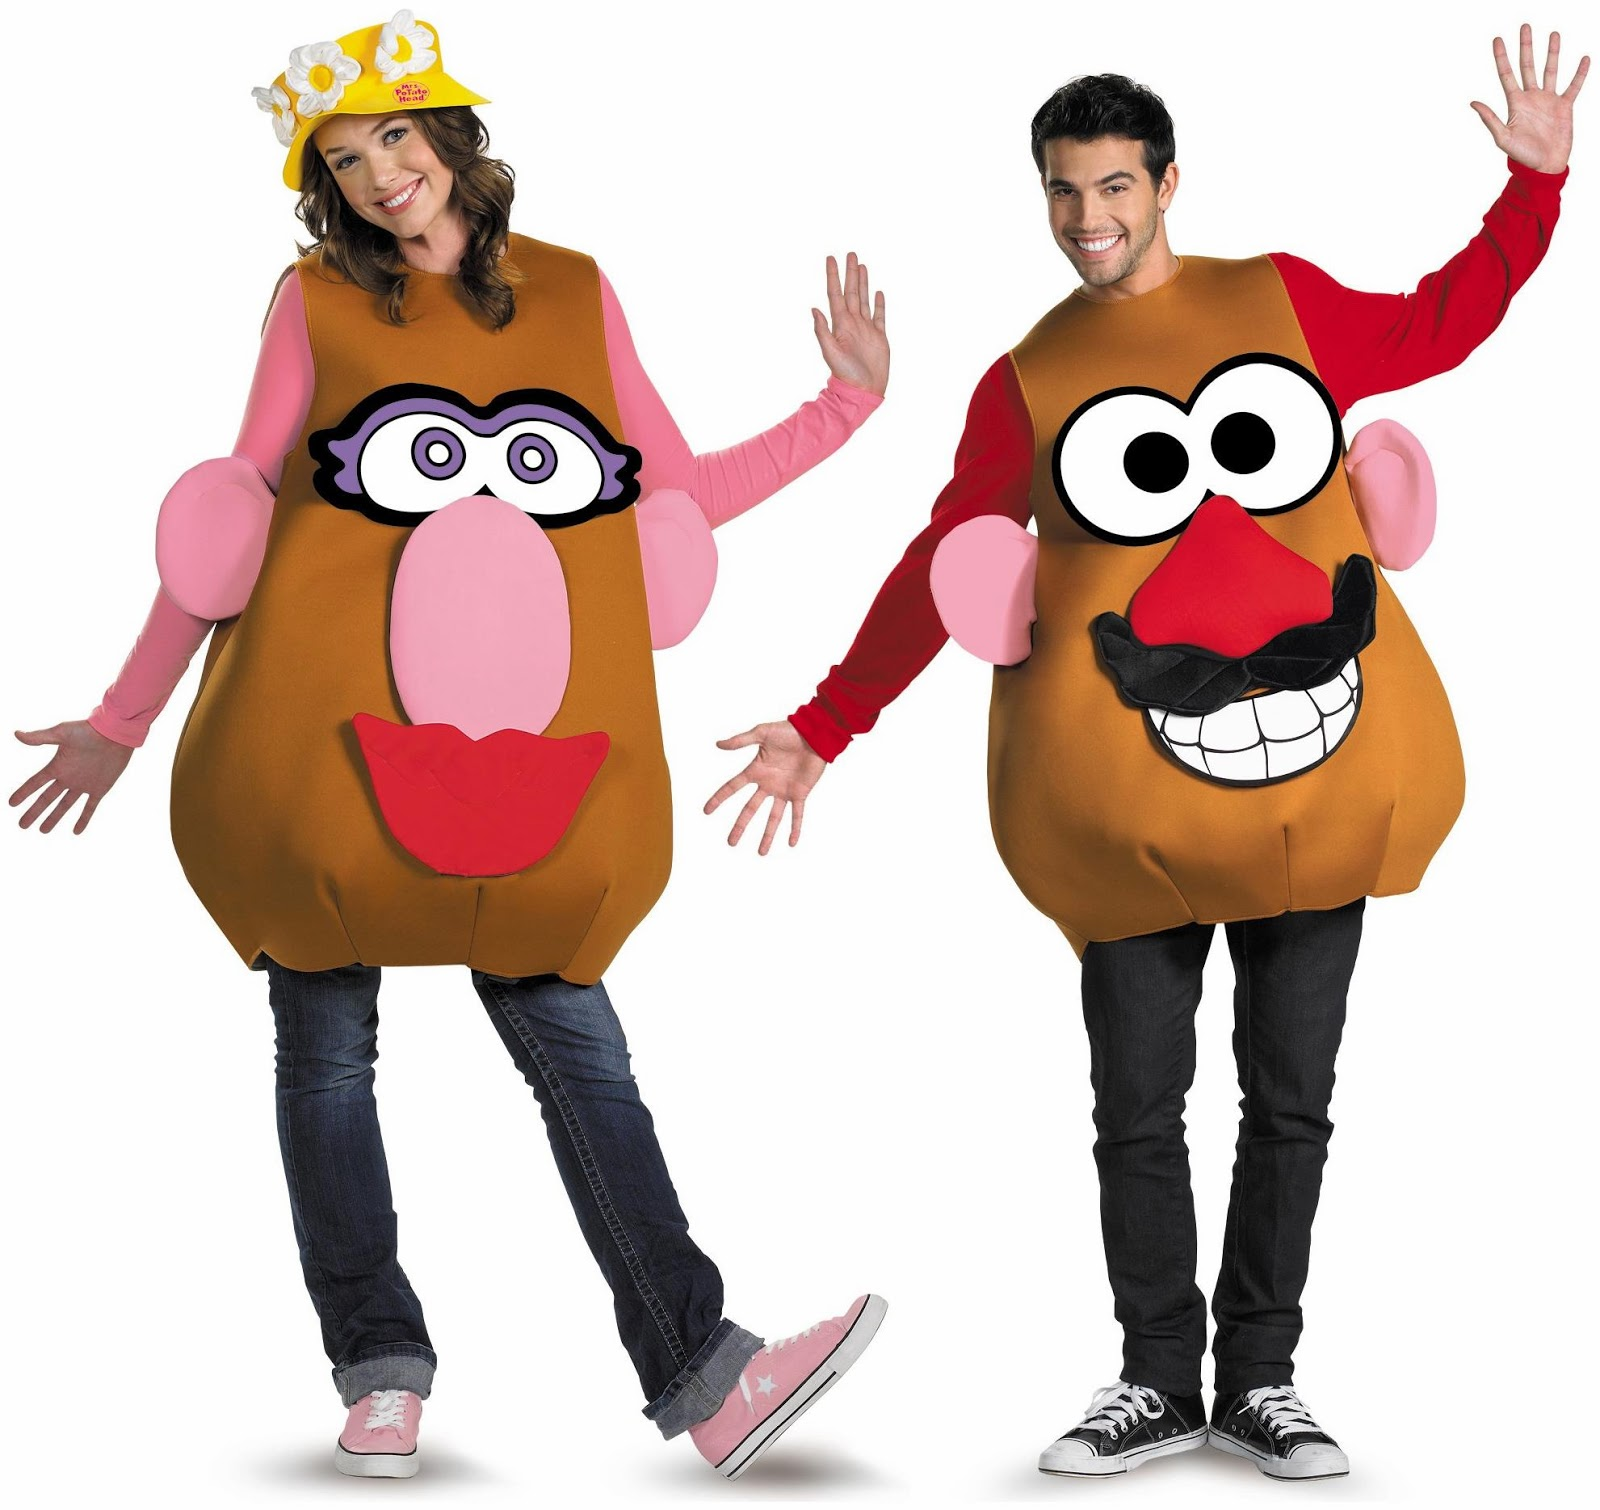 Funny-couple-costume-April-fool-day